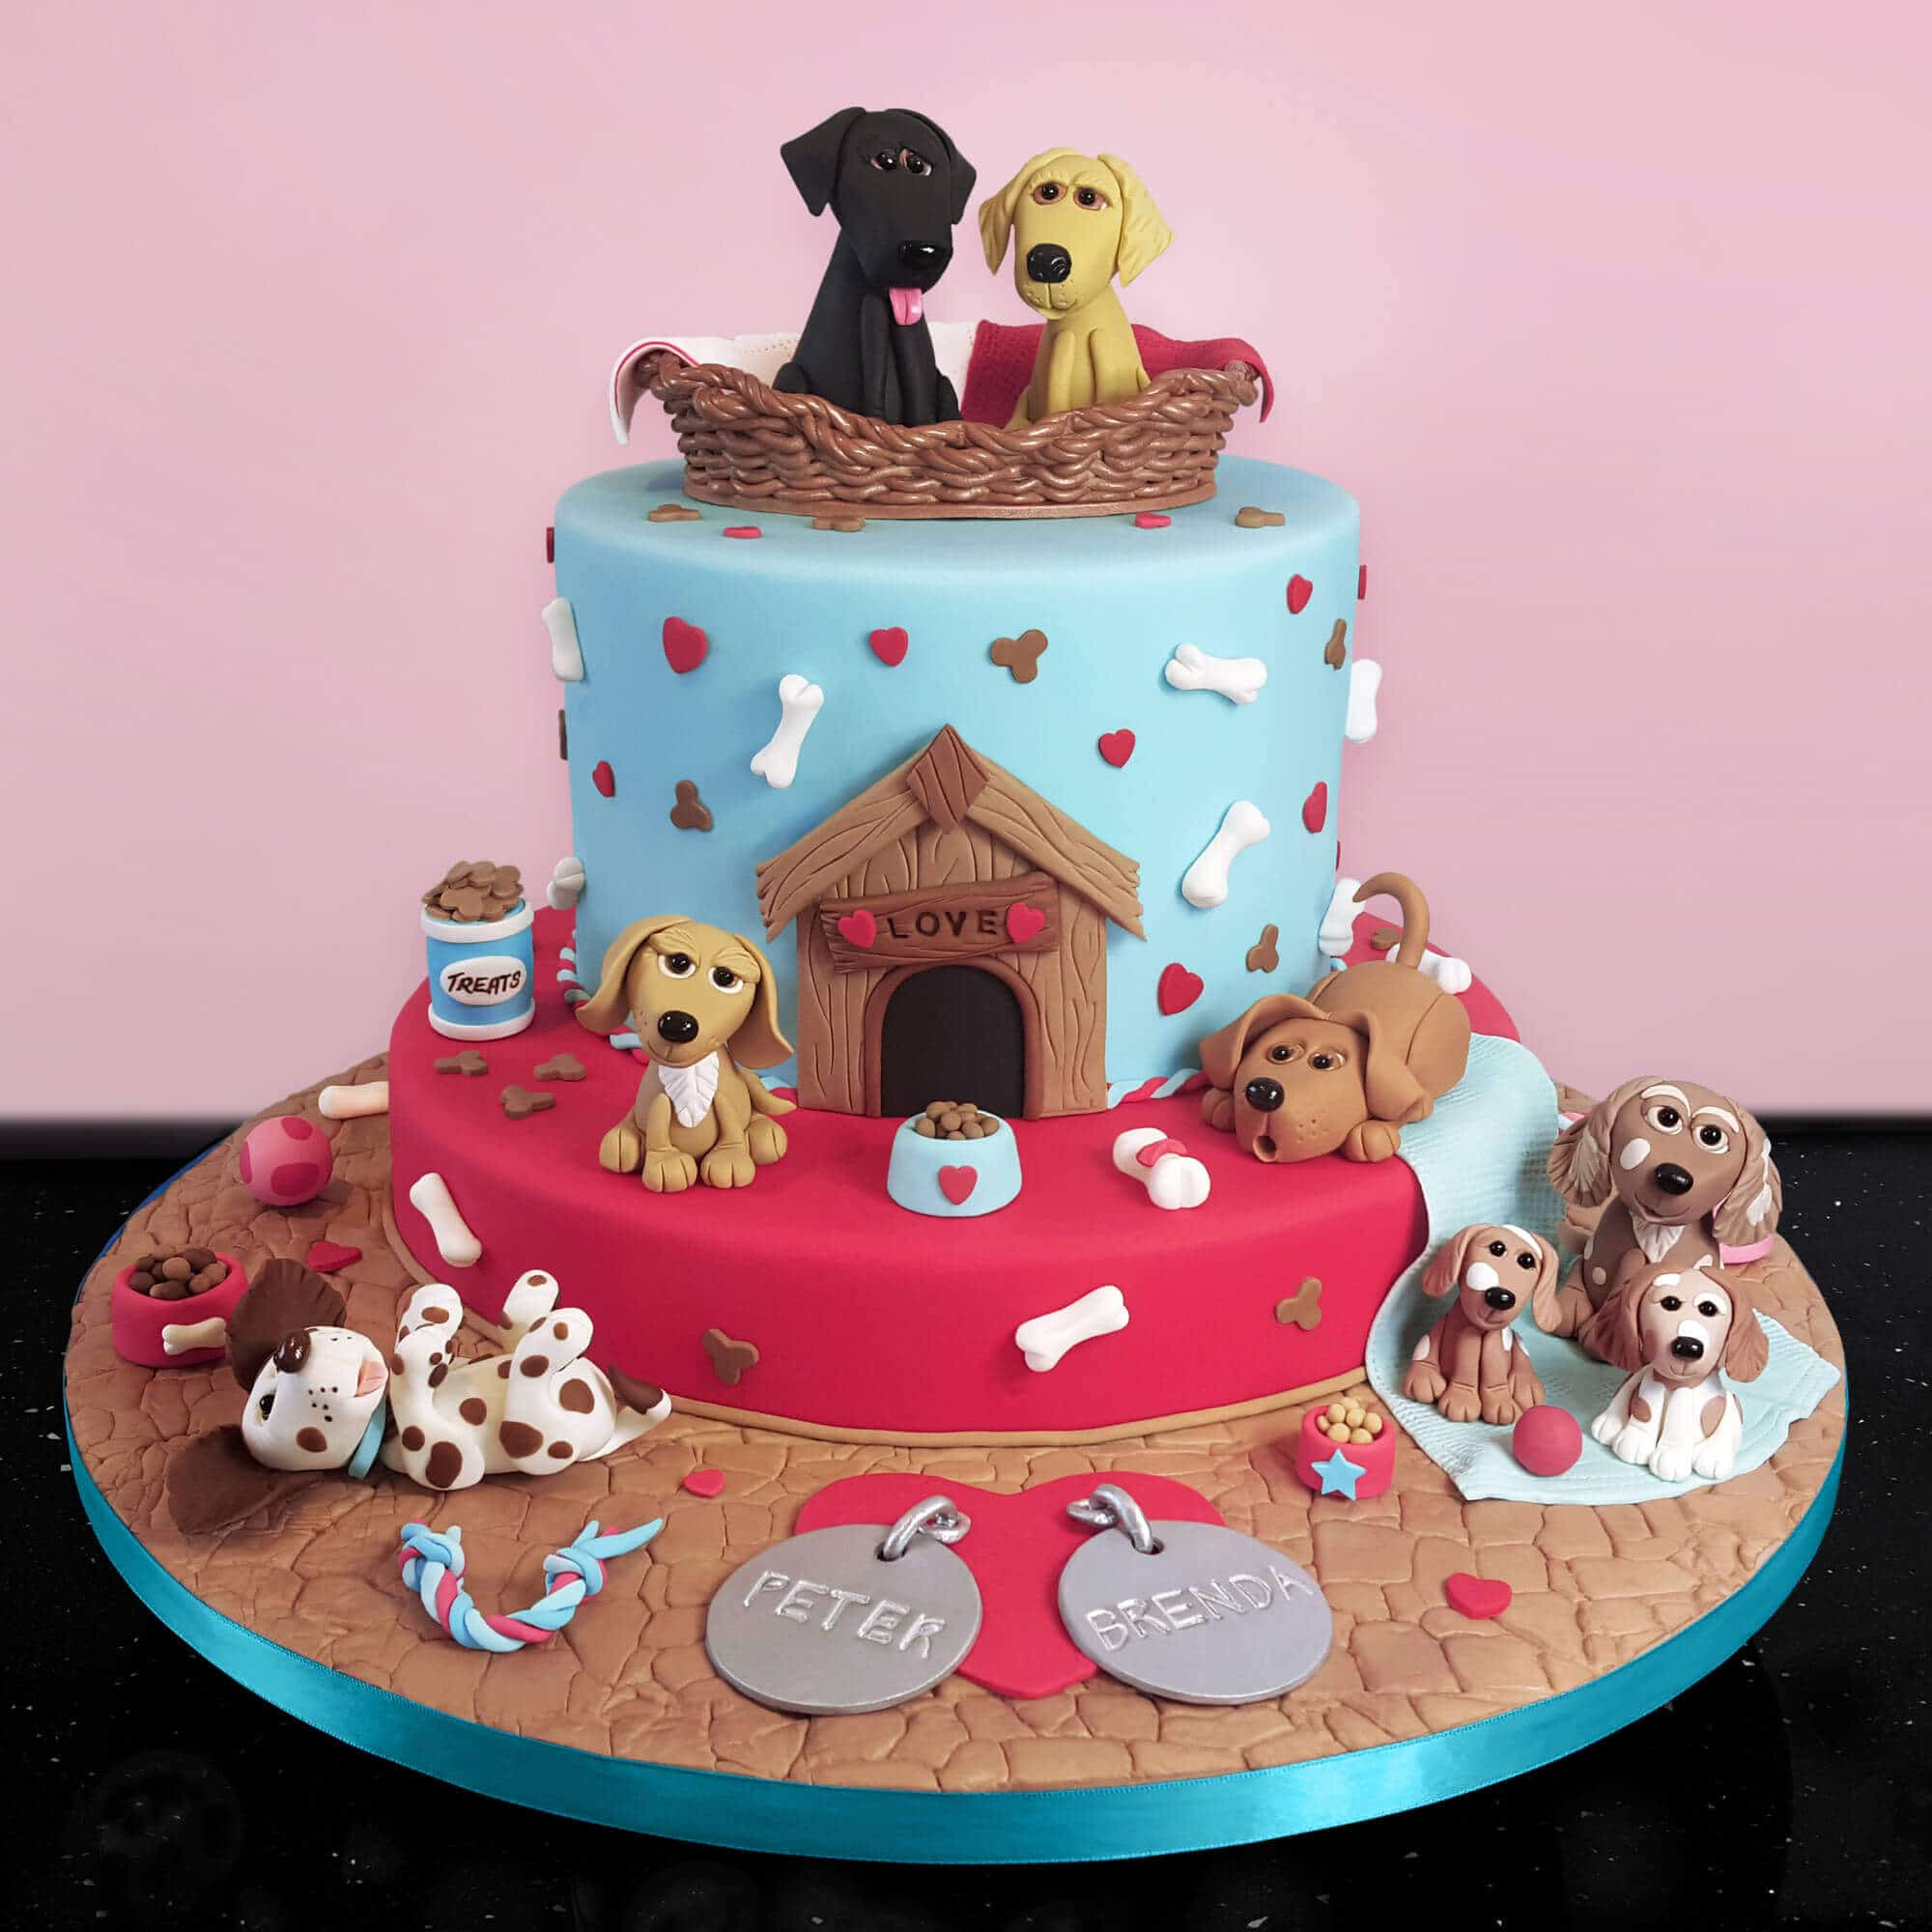 Doggie design cake made for a ruby wedding anniversary by Cake No Mistake